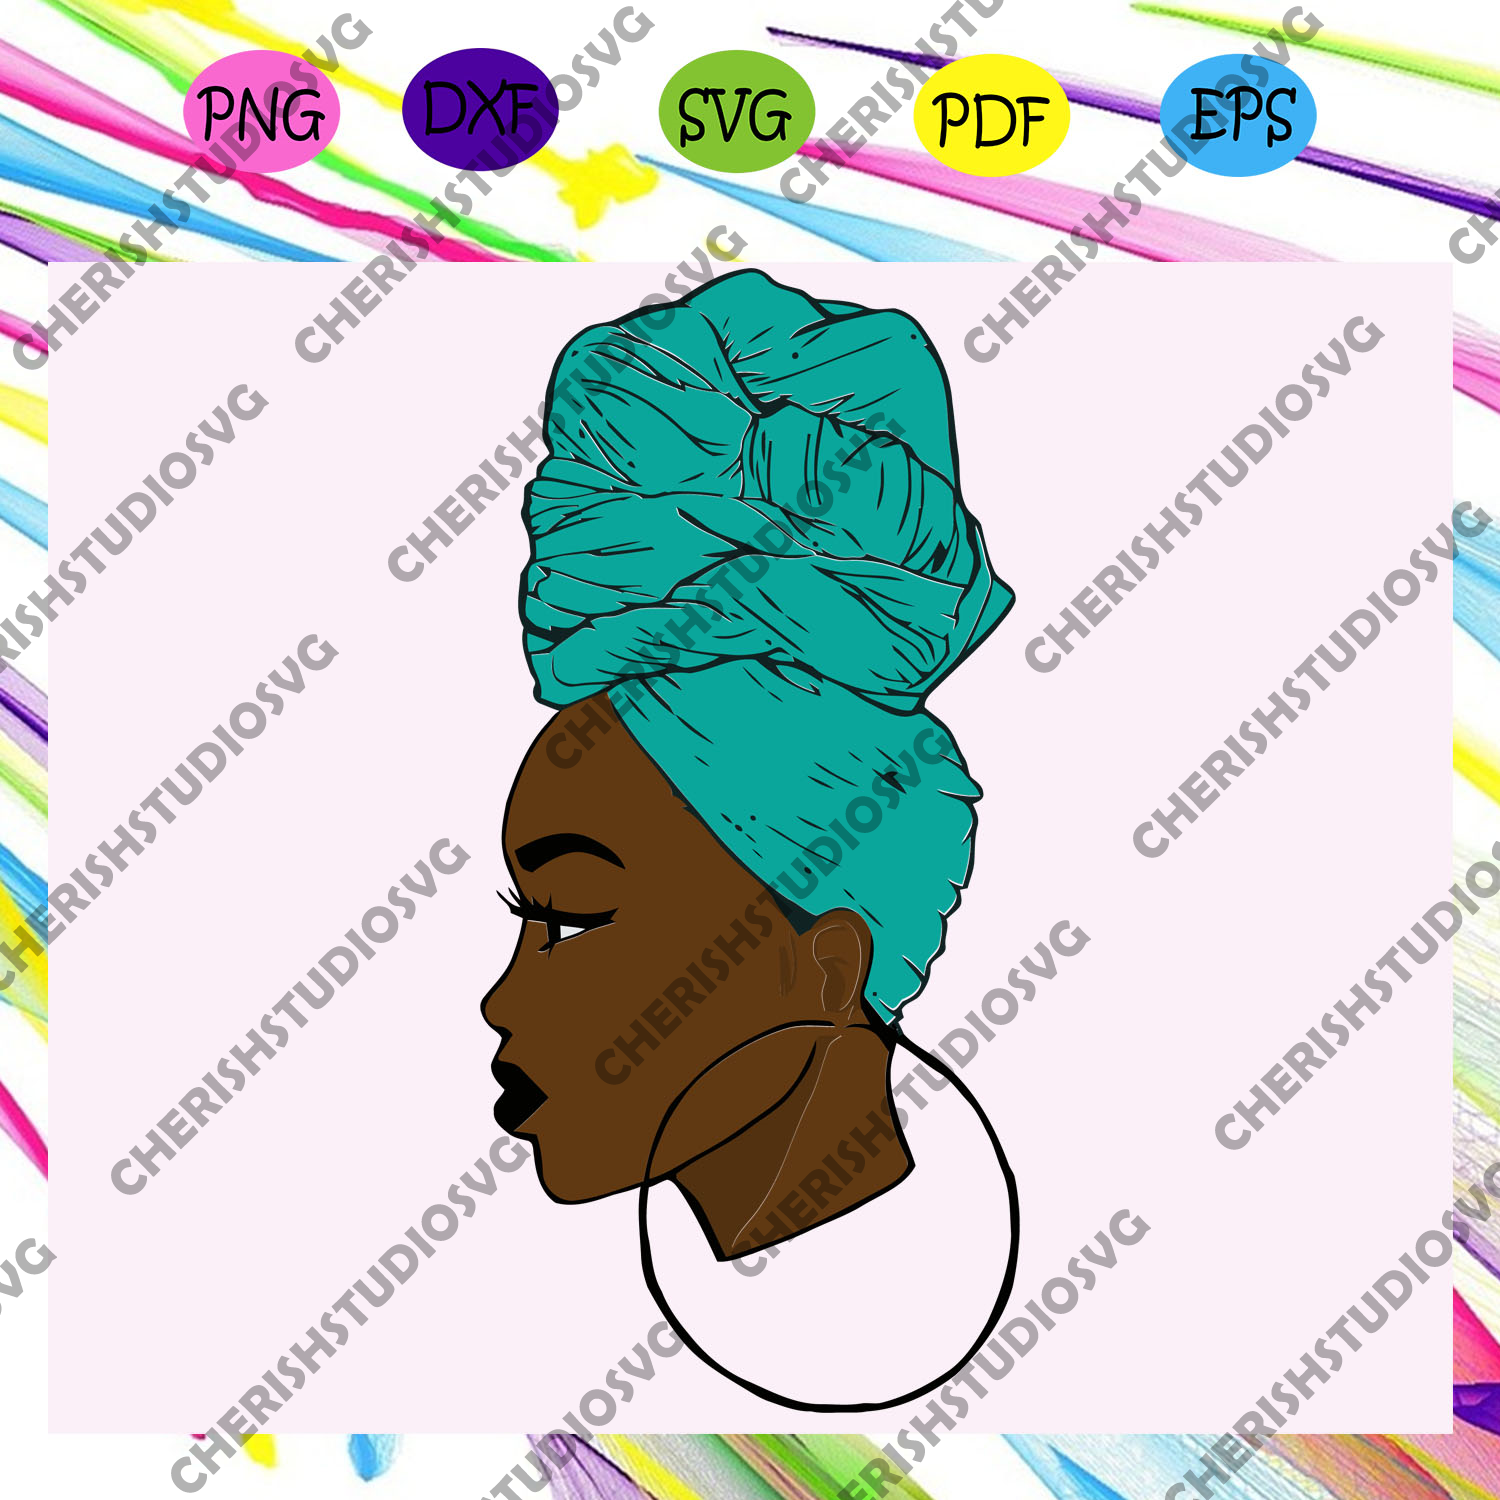 Afro Puffs Baseball Cap, sexy black girl, black lives matter, black girl magic, sexy girl, sexy queen, black queen, black queen birthday, Files For Silhouette, Files For Cricut, SVG, DXF, EPS, PNG, Instant Download